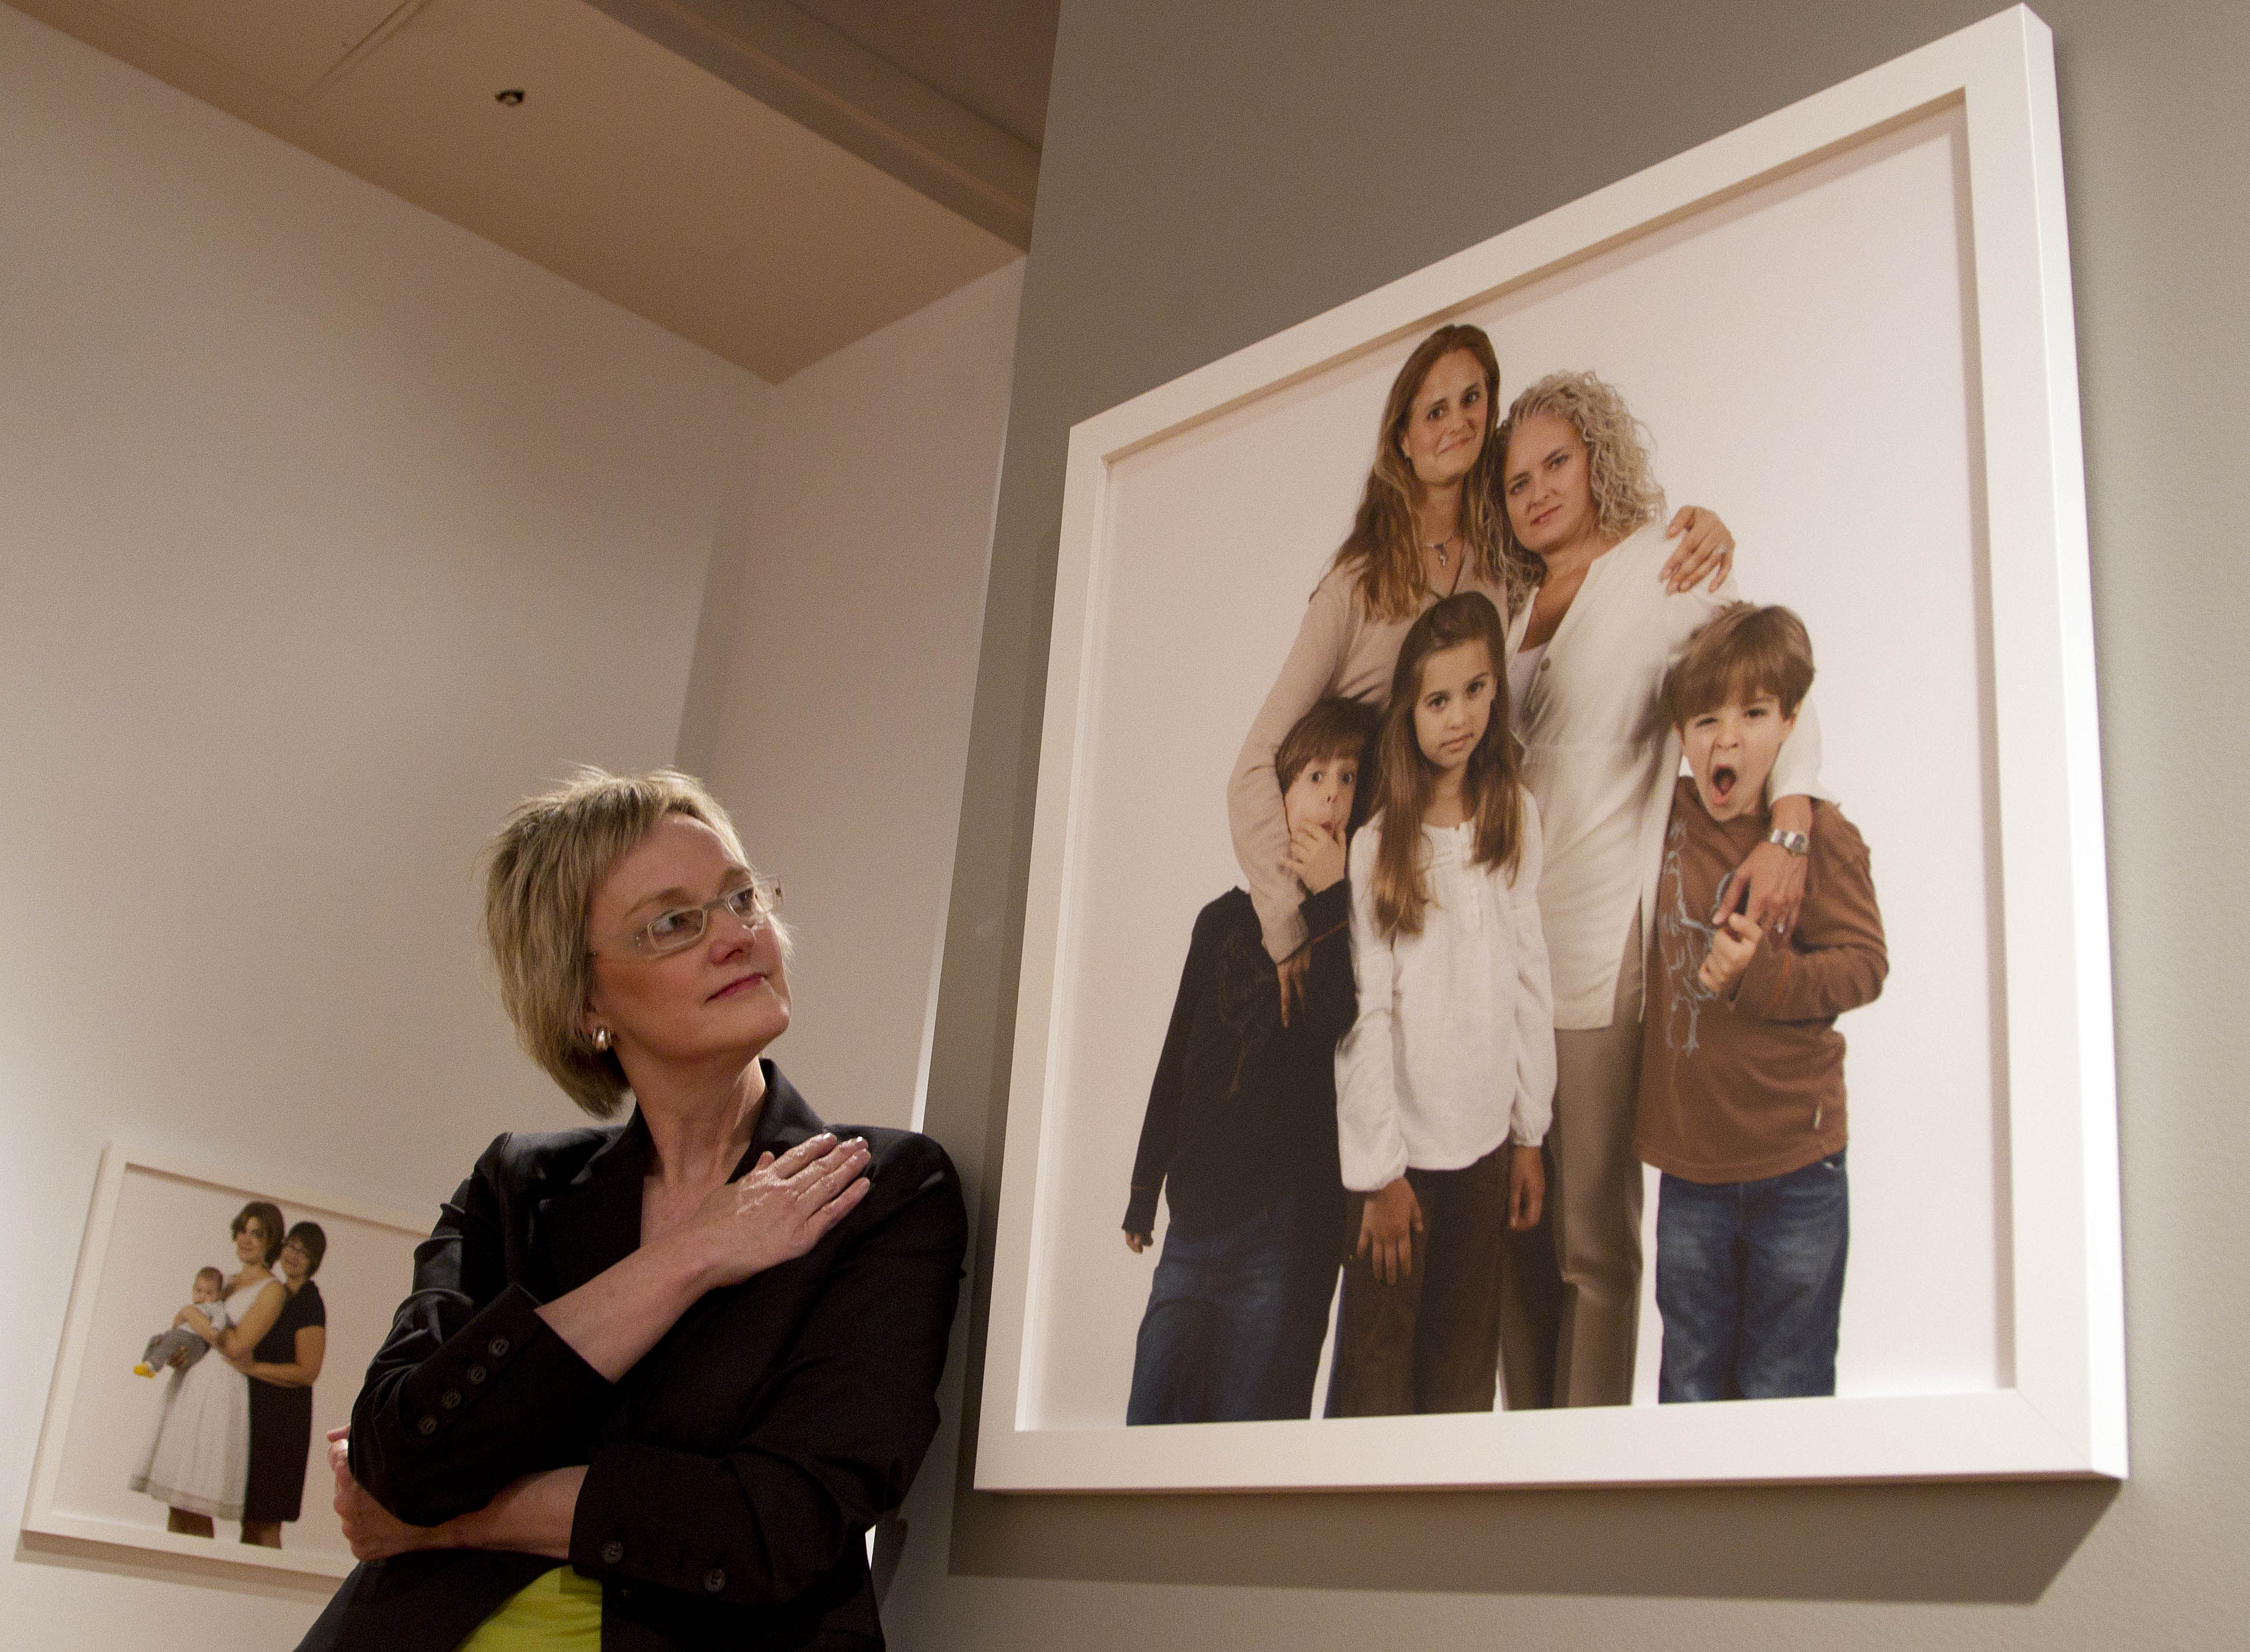 Photographer Carolyn Sherer looks at her group of photographs of lesbian families on Thursday, March 29, 2012 at the Civil Rights Institute in Birmingham, Ala.,Thursday, March 29, 2012. The photographs will be displayed thru June. Sherer says she hopes the photographs start a conversation about equality for everyone. (AP Photo/Dave Martin)